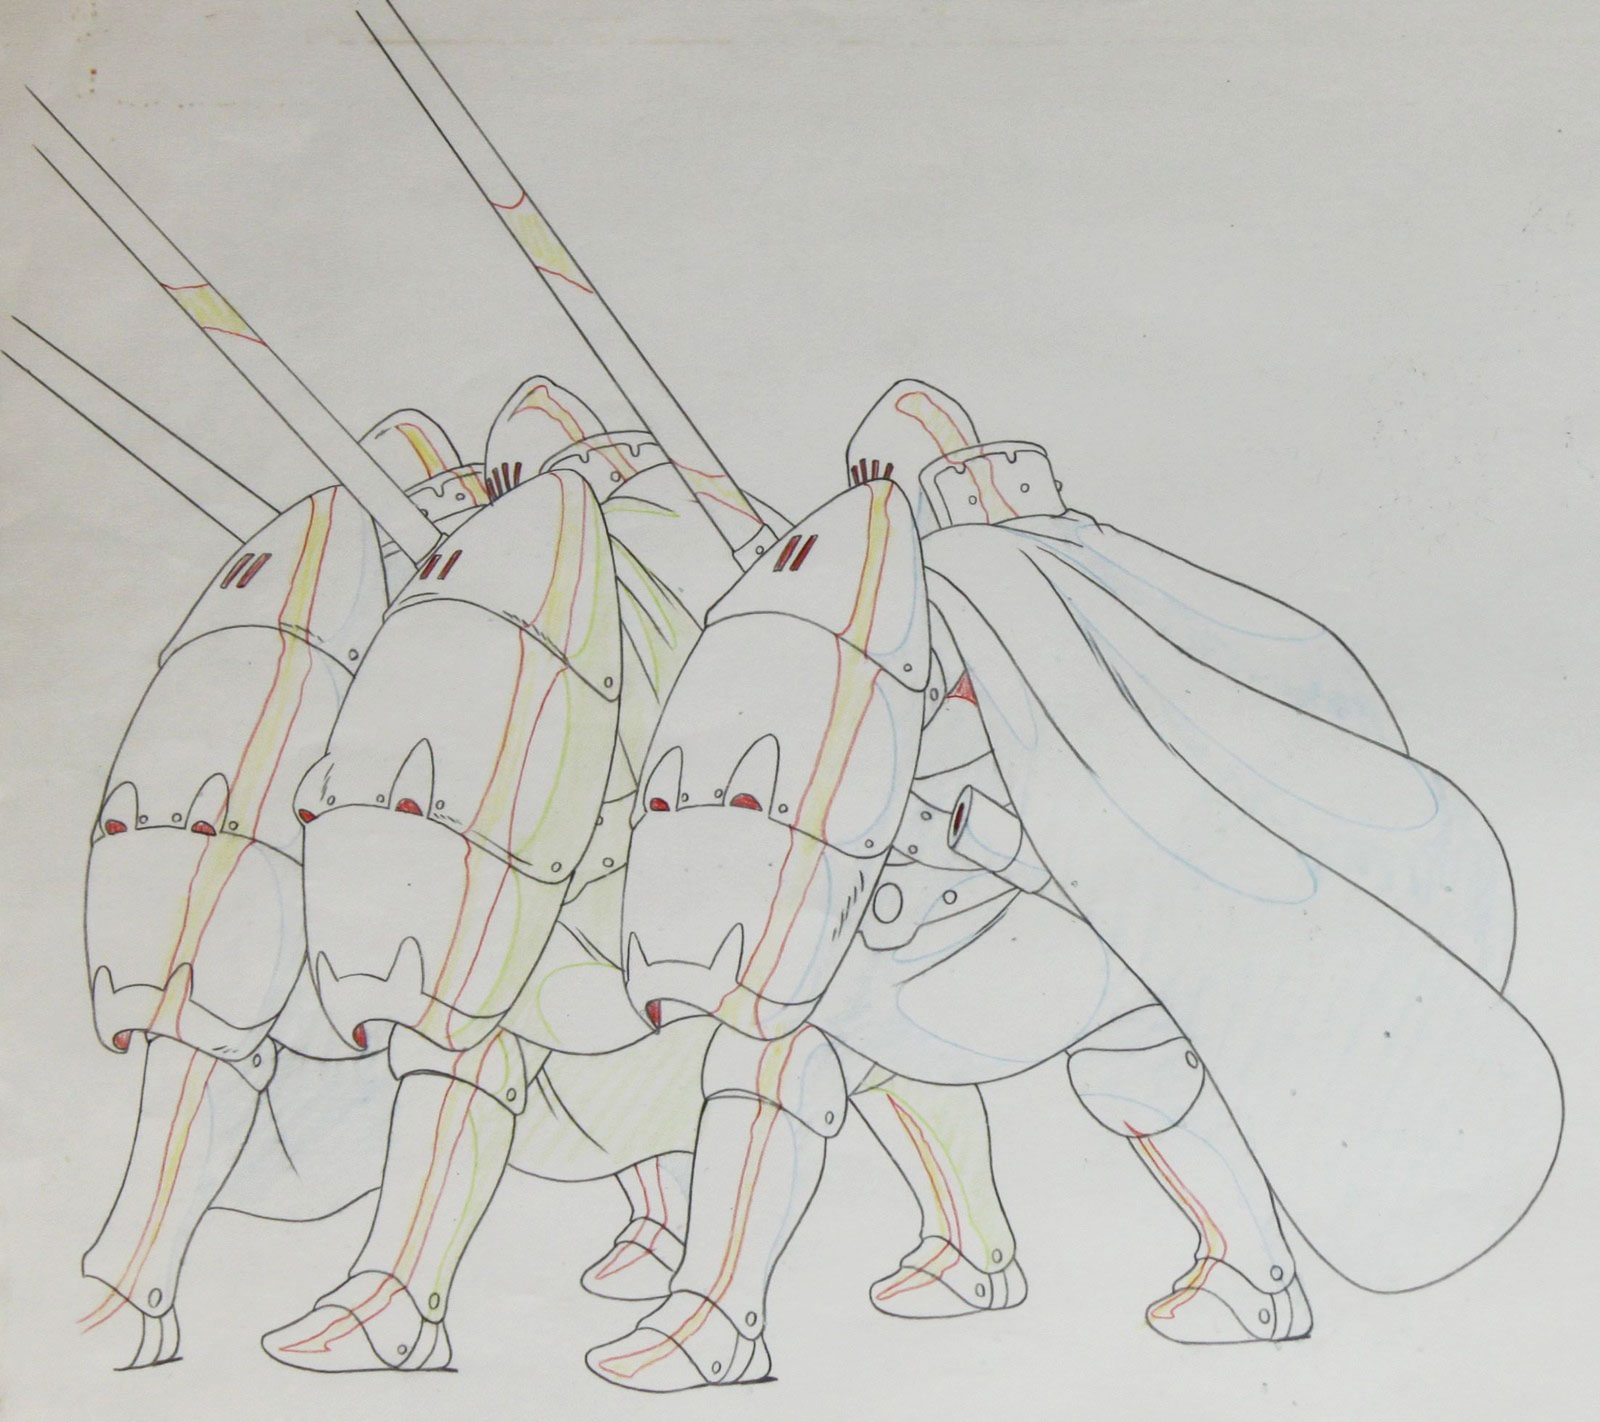 nausicaa_of_the_valley_of_the_wind_concept_art_character_drawing_02.JPG